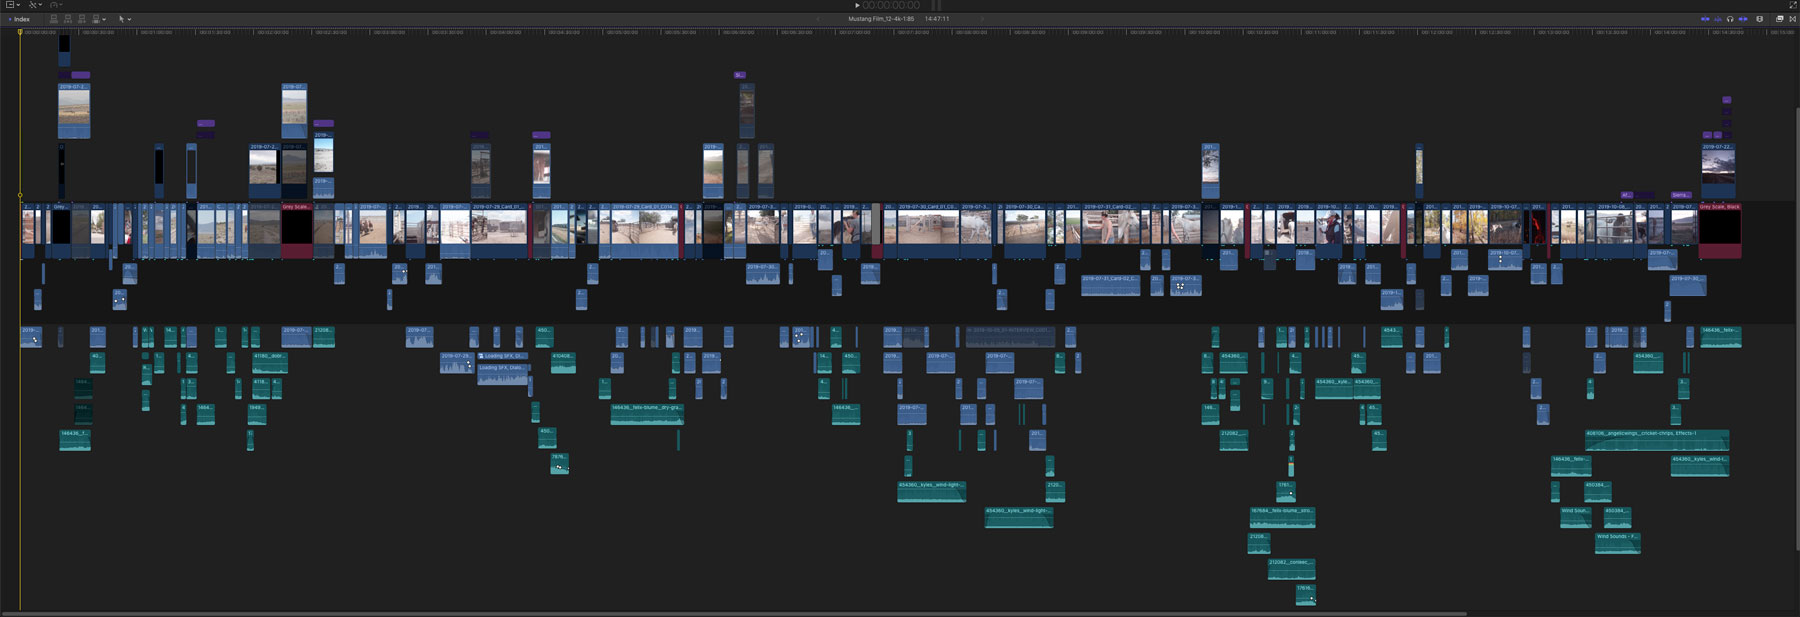 dcbryan-FCPX-timeline